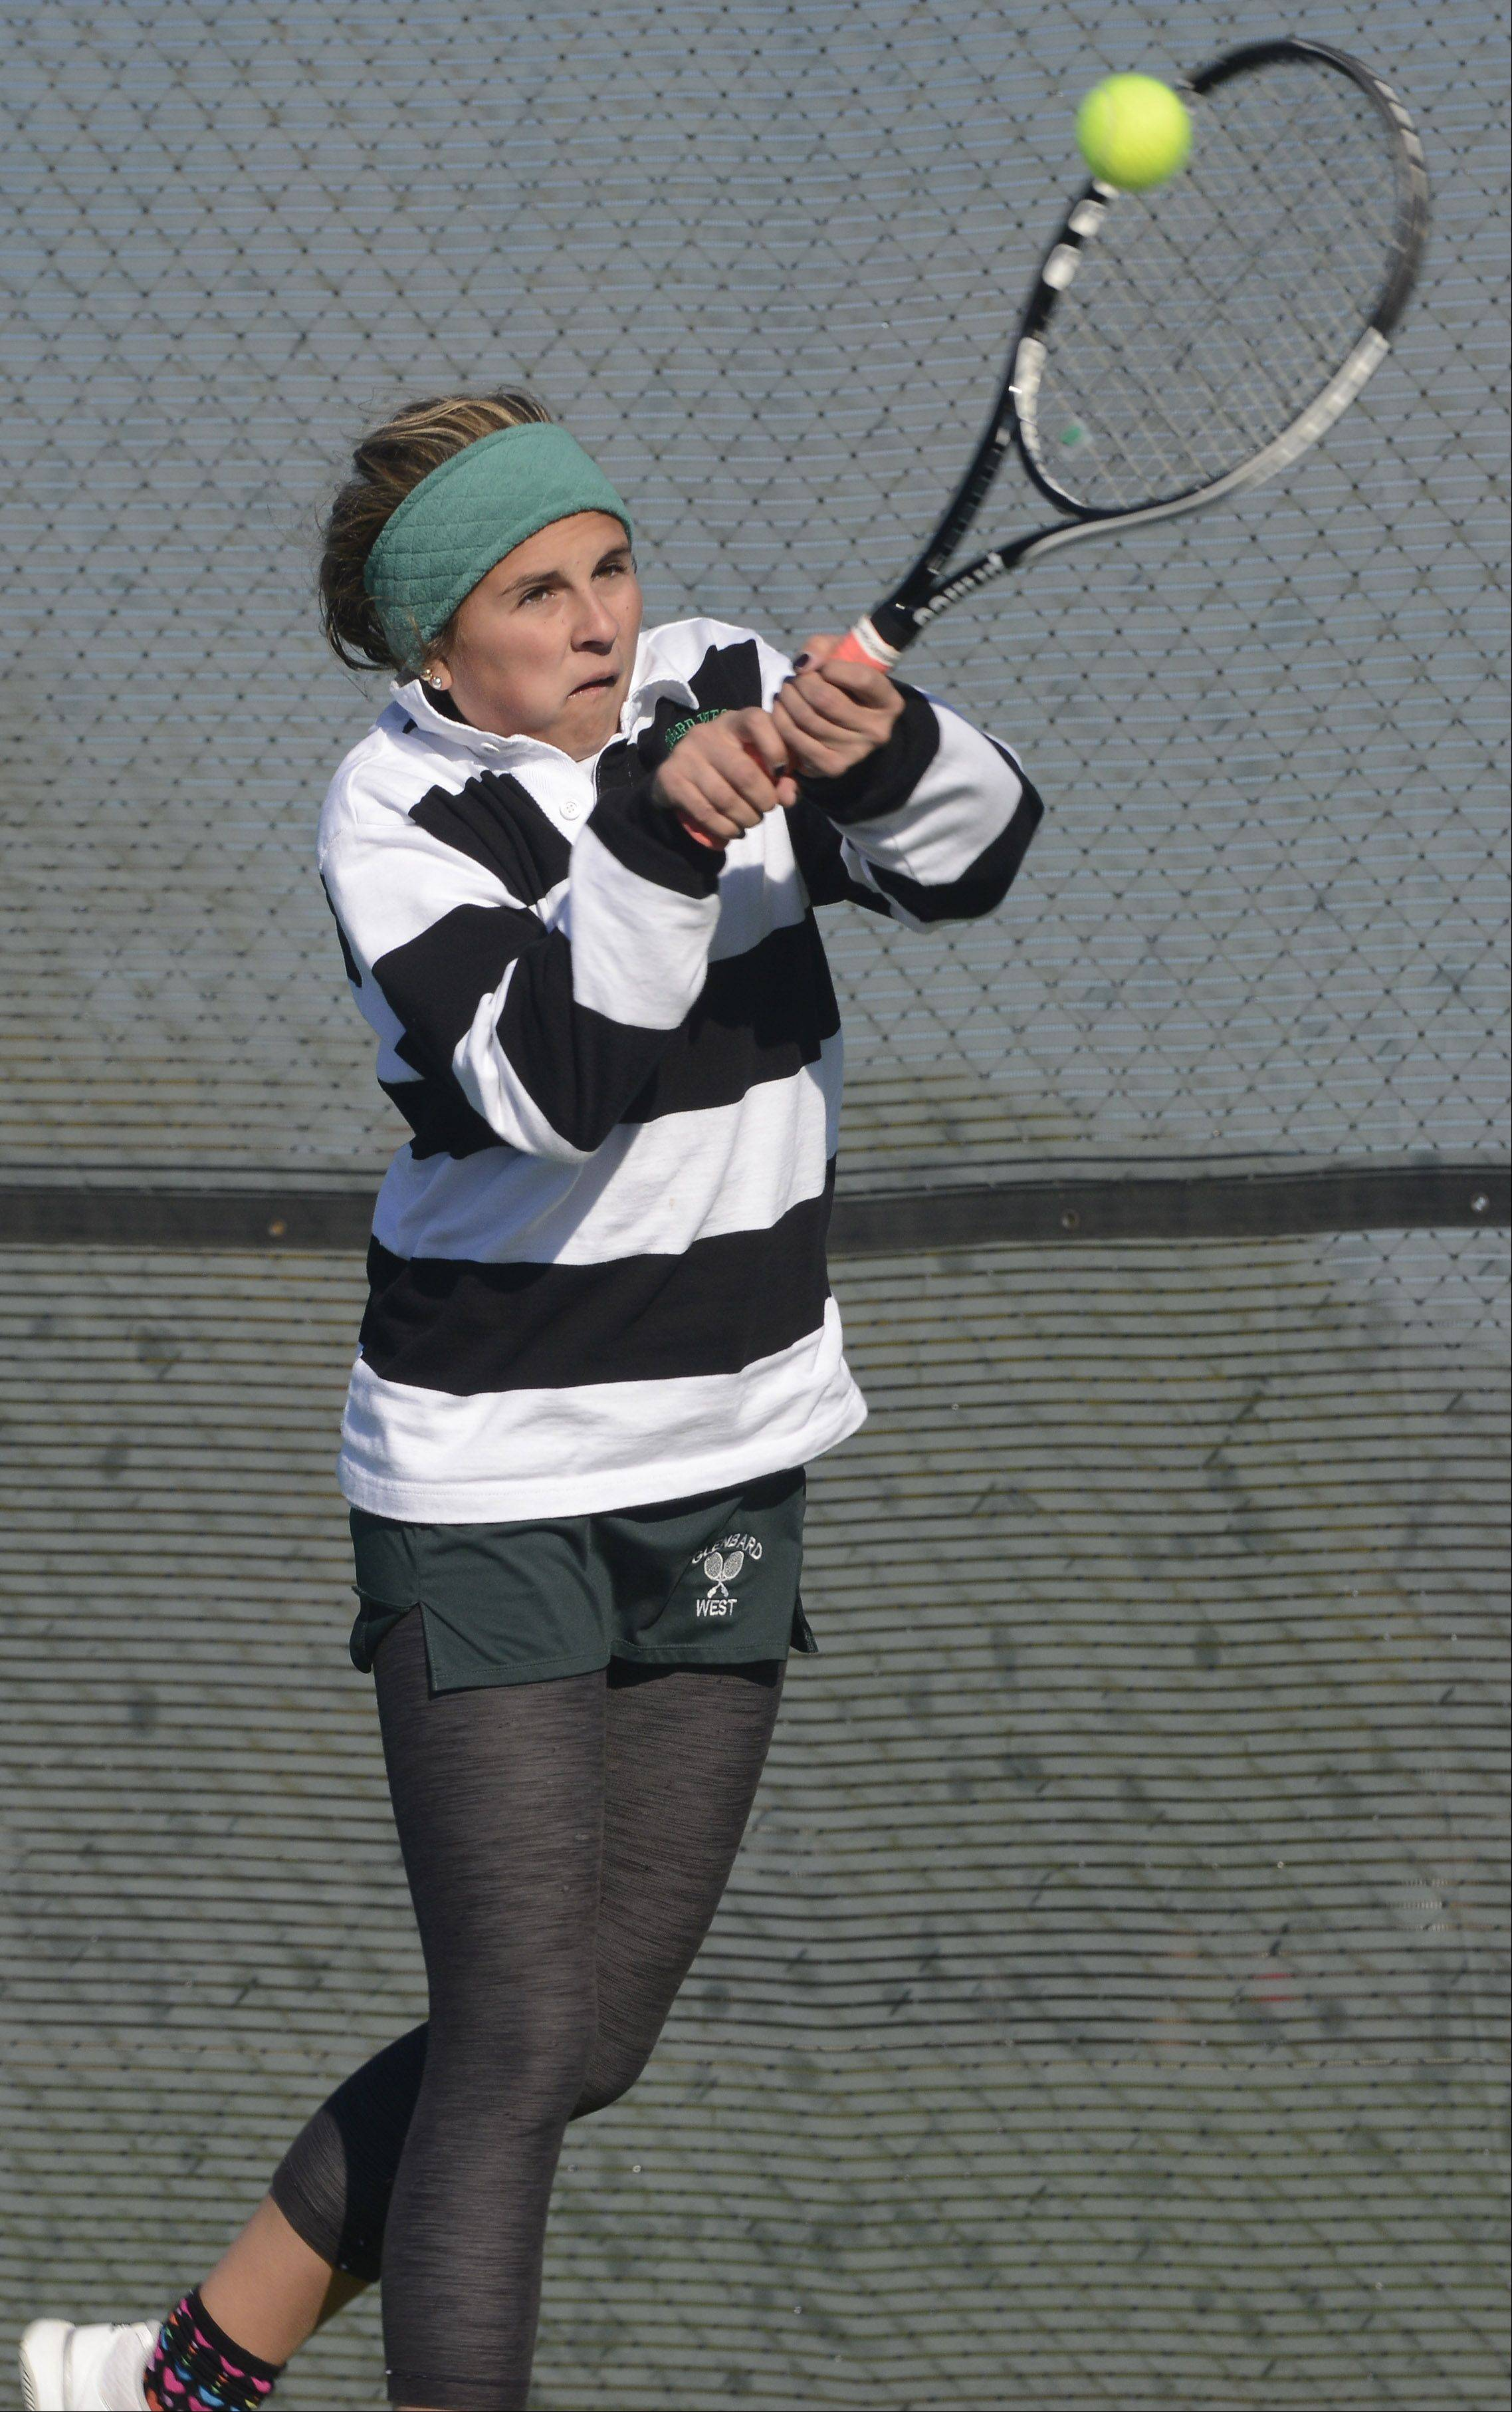 Glenbard West�s Maggie Hughes returns a smash during the girls state tennis preliminaries at Prospect High School Thursday.